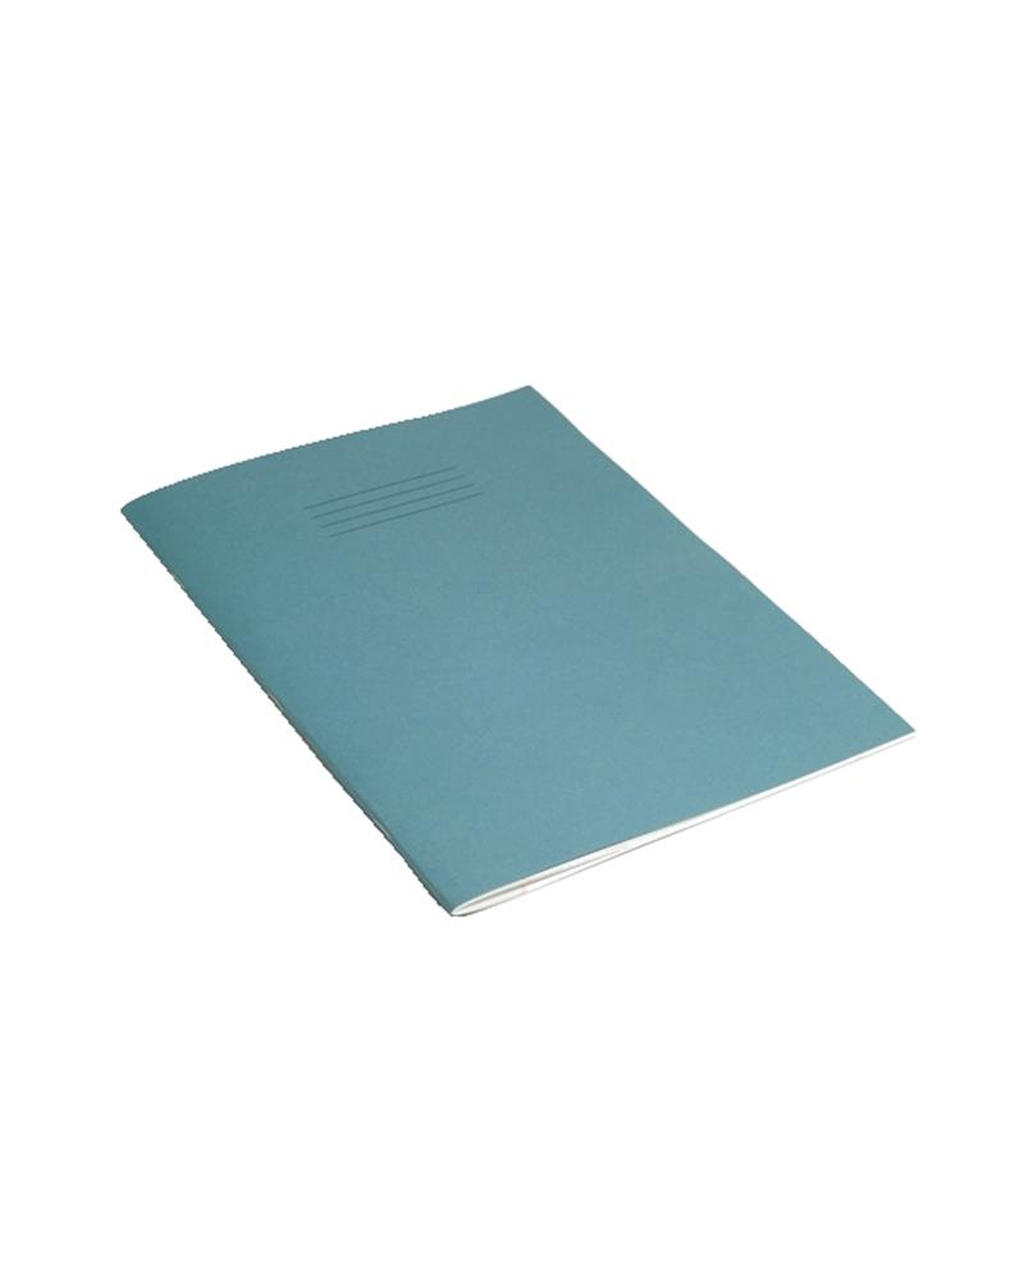 Exercise Book A4 (297 x 210mm) Light Blue Cover 8mm Ruled & Margin 80 Pages